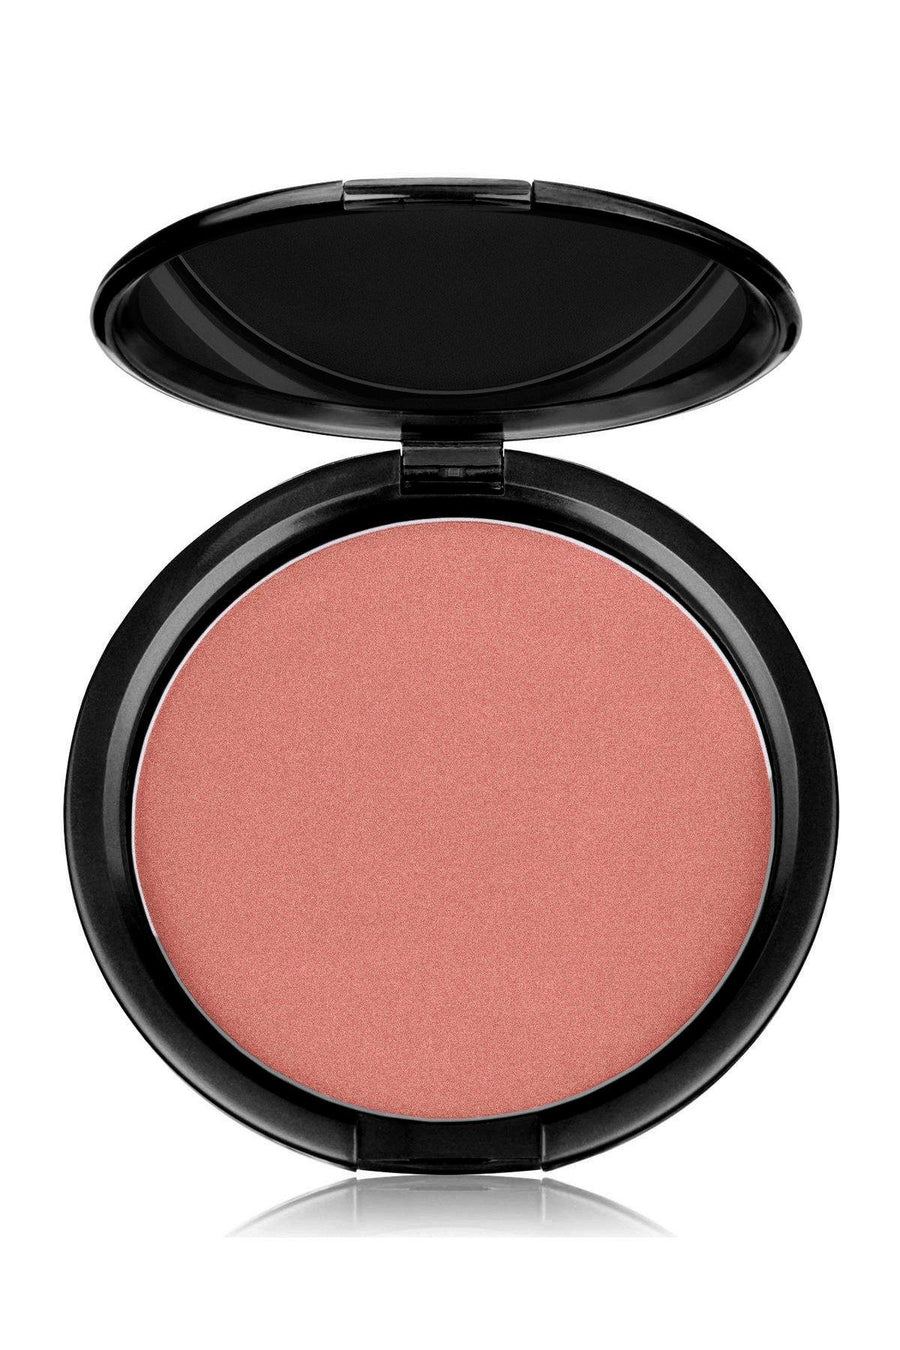 Blush Mineral Pressed Powder - Pink Brown Tone - Blend Mineral Cosmetics